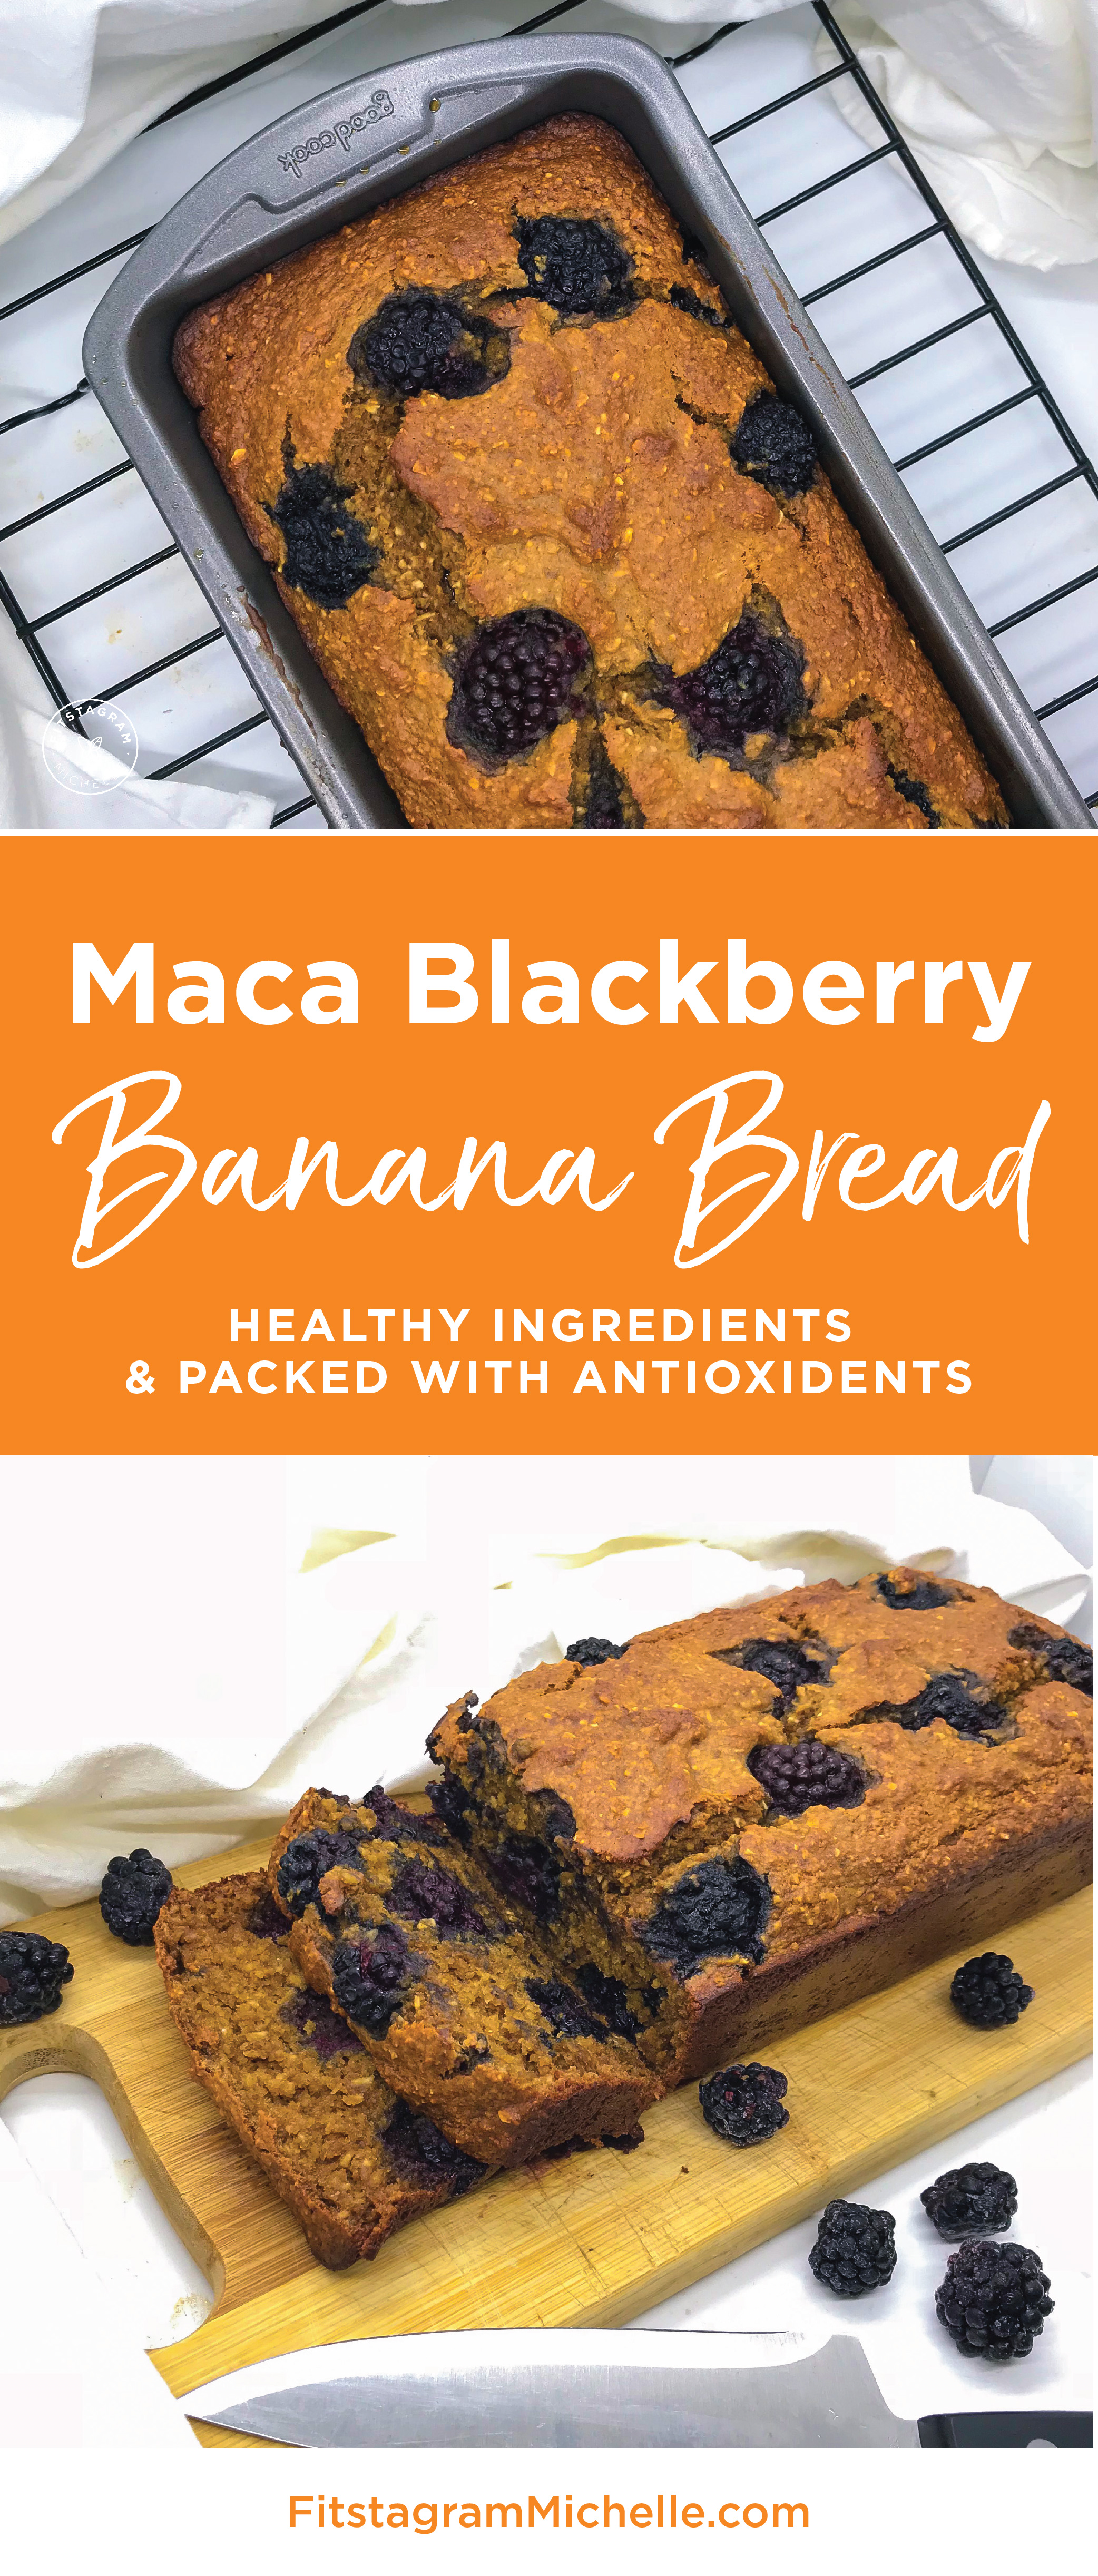 Healthy Maca Blackberry Banana Bread. No oil, no sugar, no flour. Packed with antioxidants and protein. Perfect for a healthy and clean breakfast or snack. Find the recipe at FitstagramMichelle.com/blog/maca-blackberry-banana-bread